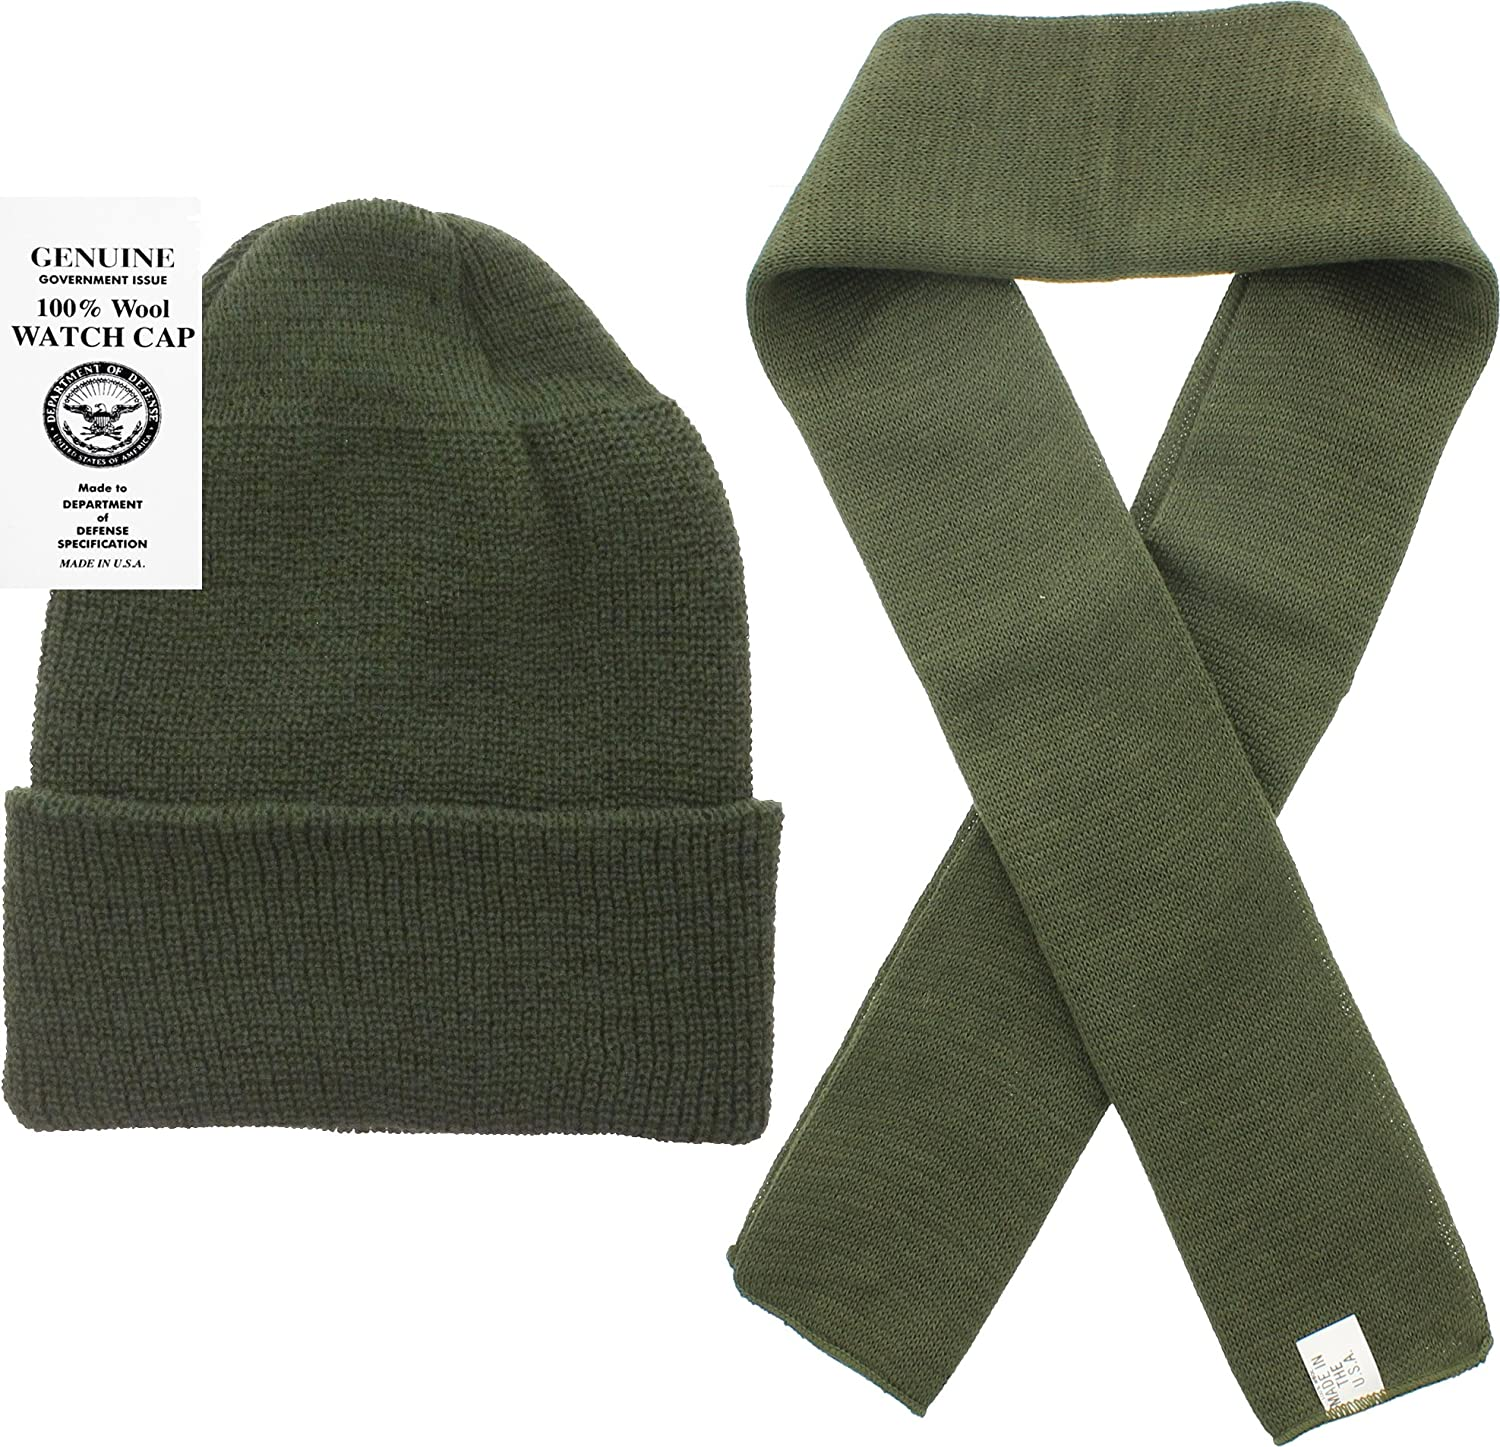 Amazon.com  US Army Genuine GI Military 100% Wool Scarf   Watch Cap (2  Piece Set) (Black)  Clothing f99a95478f8